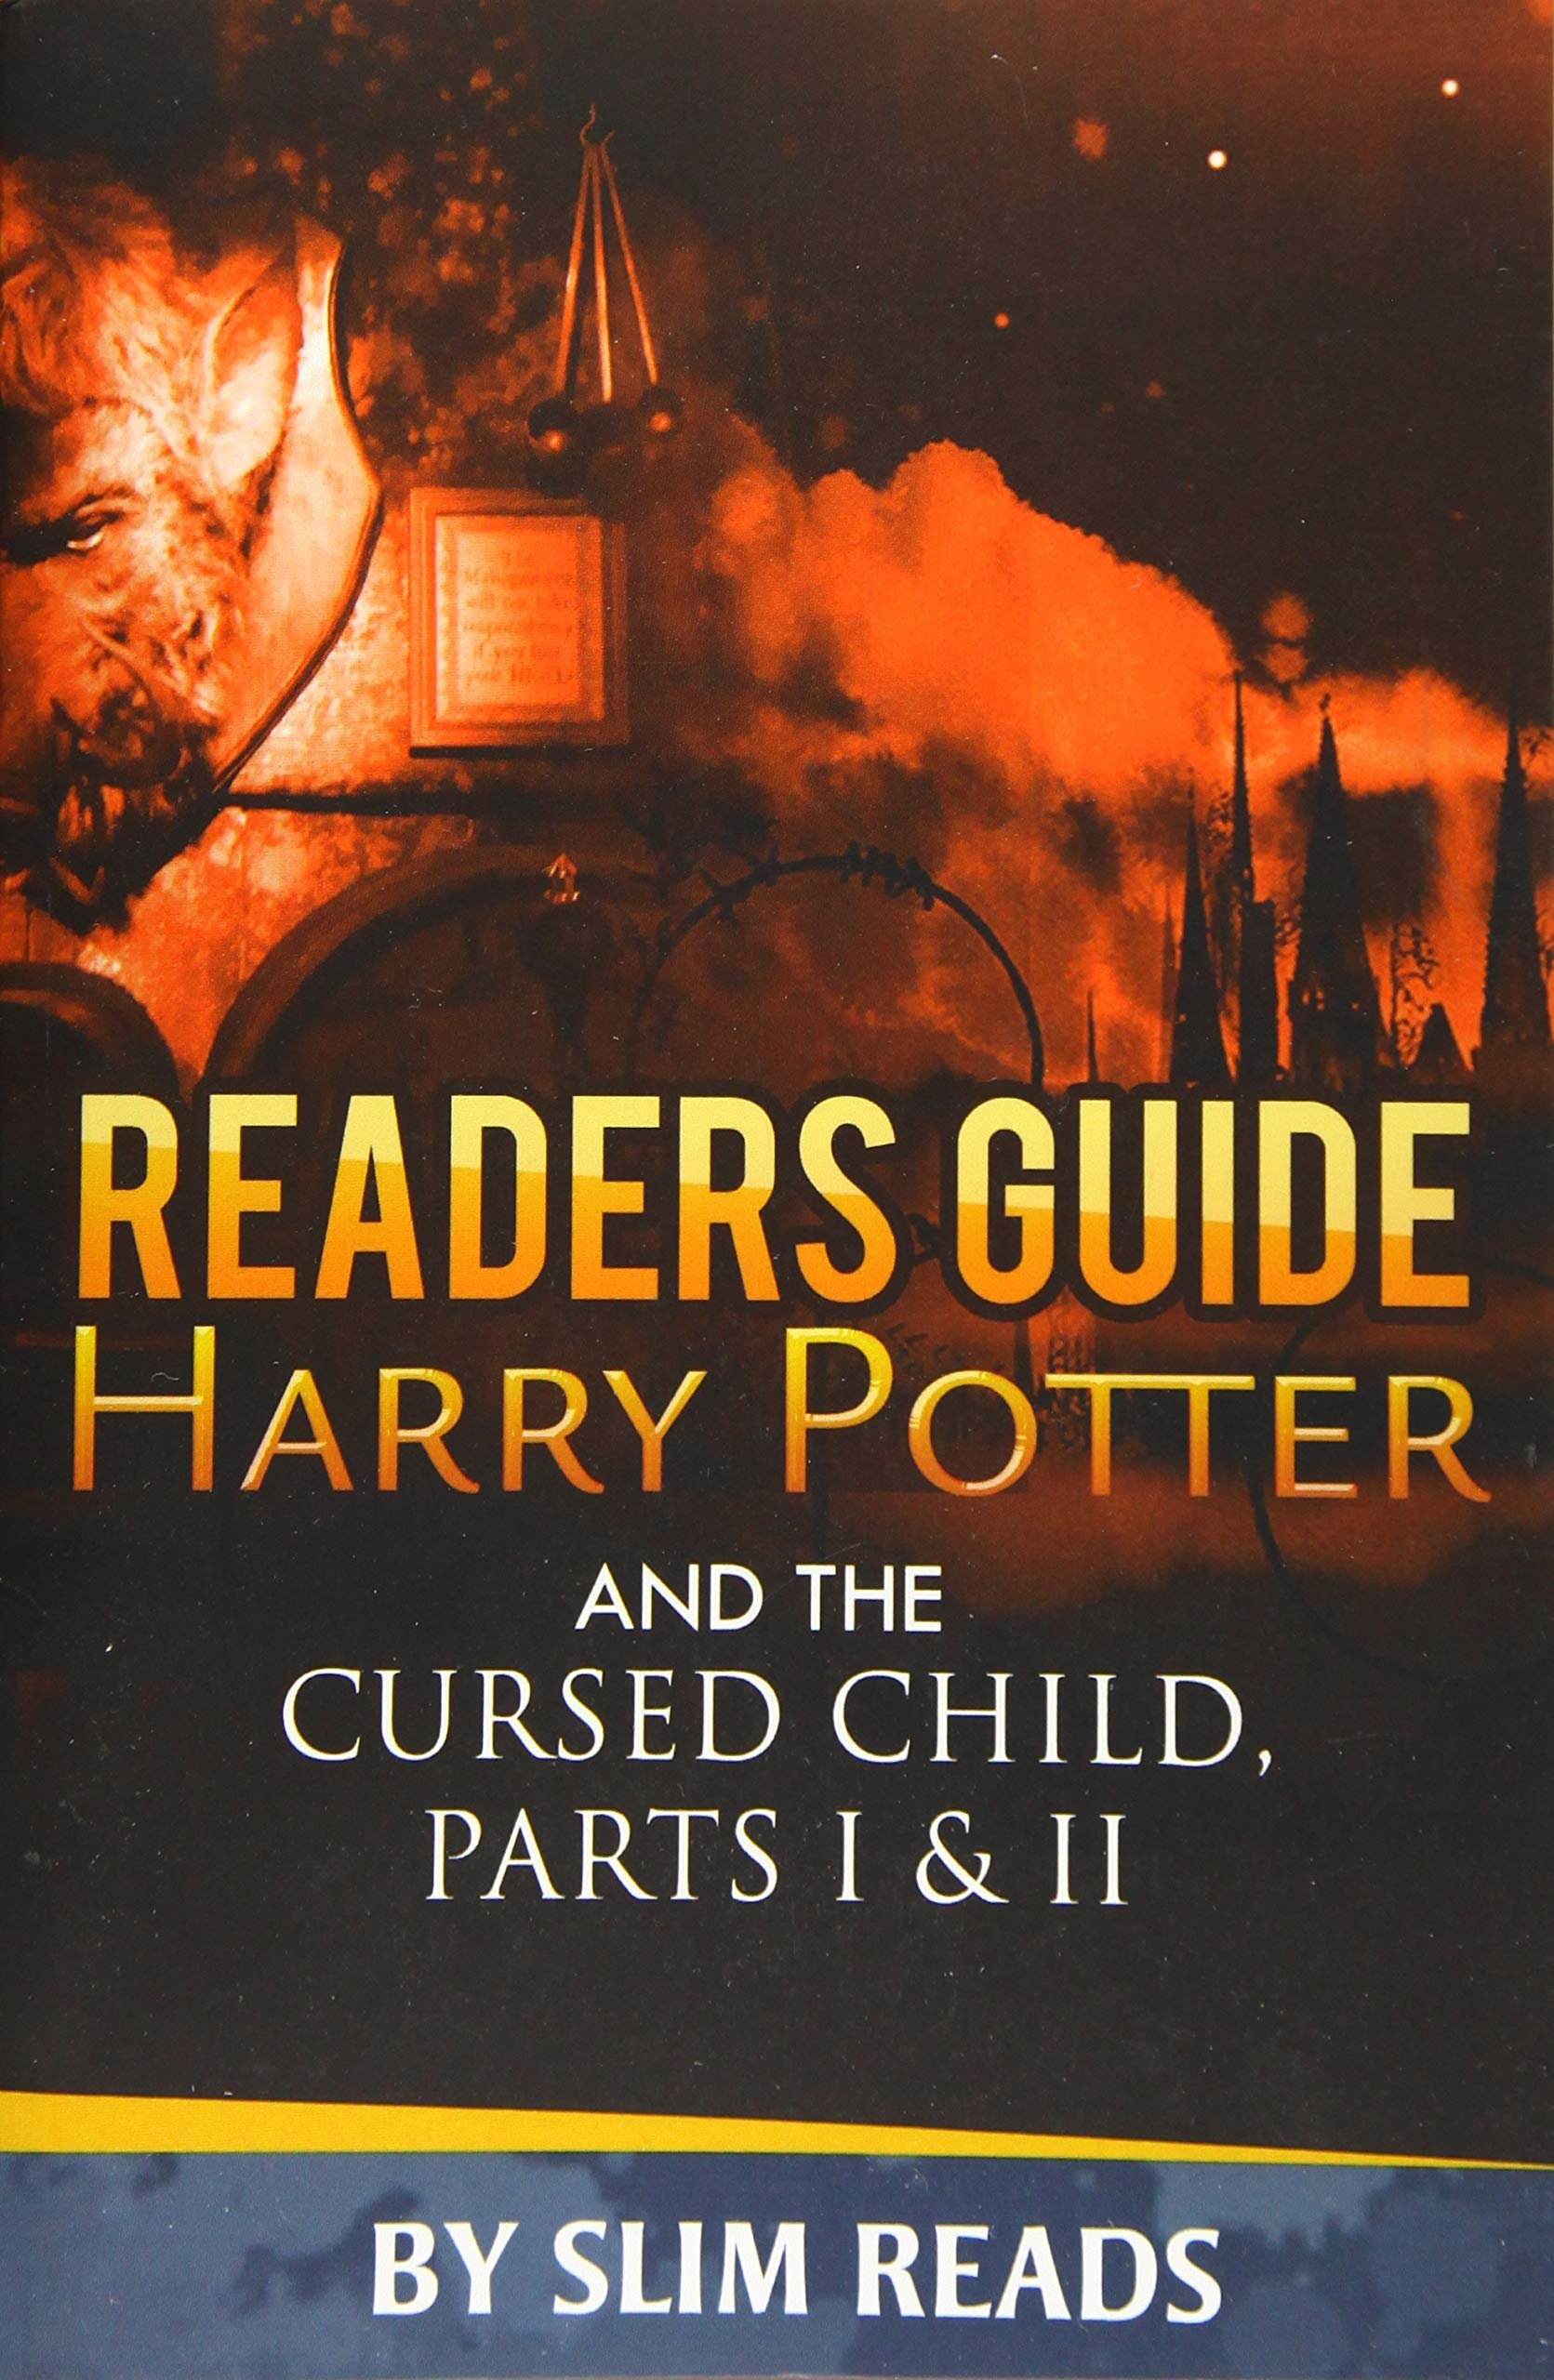 Readers Guide: Harry Potter and the Cursed Child - Parts I